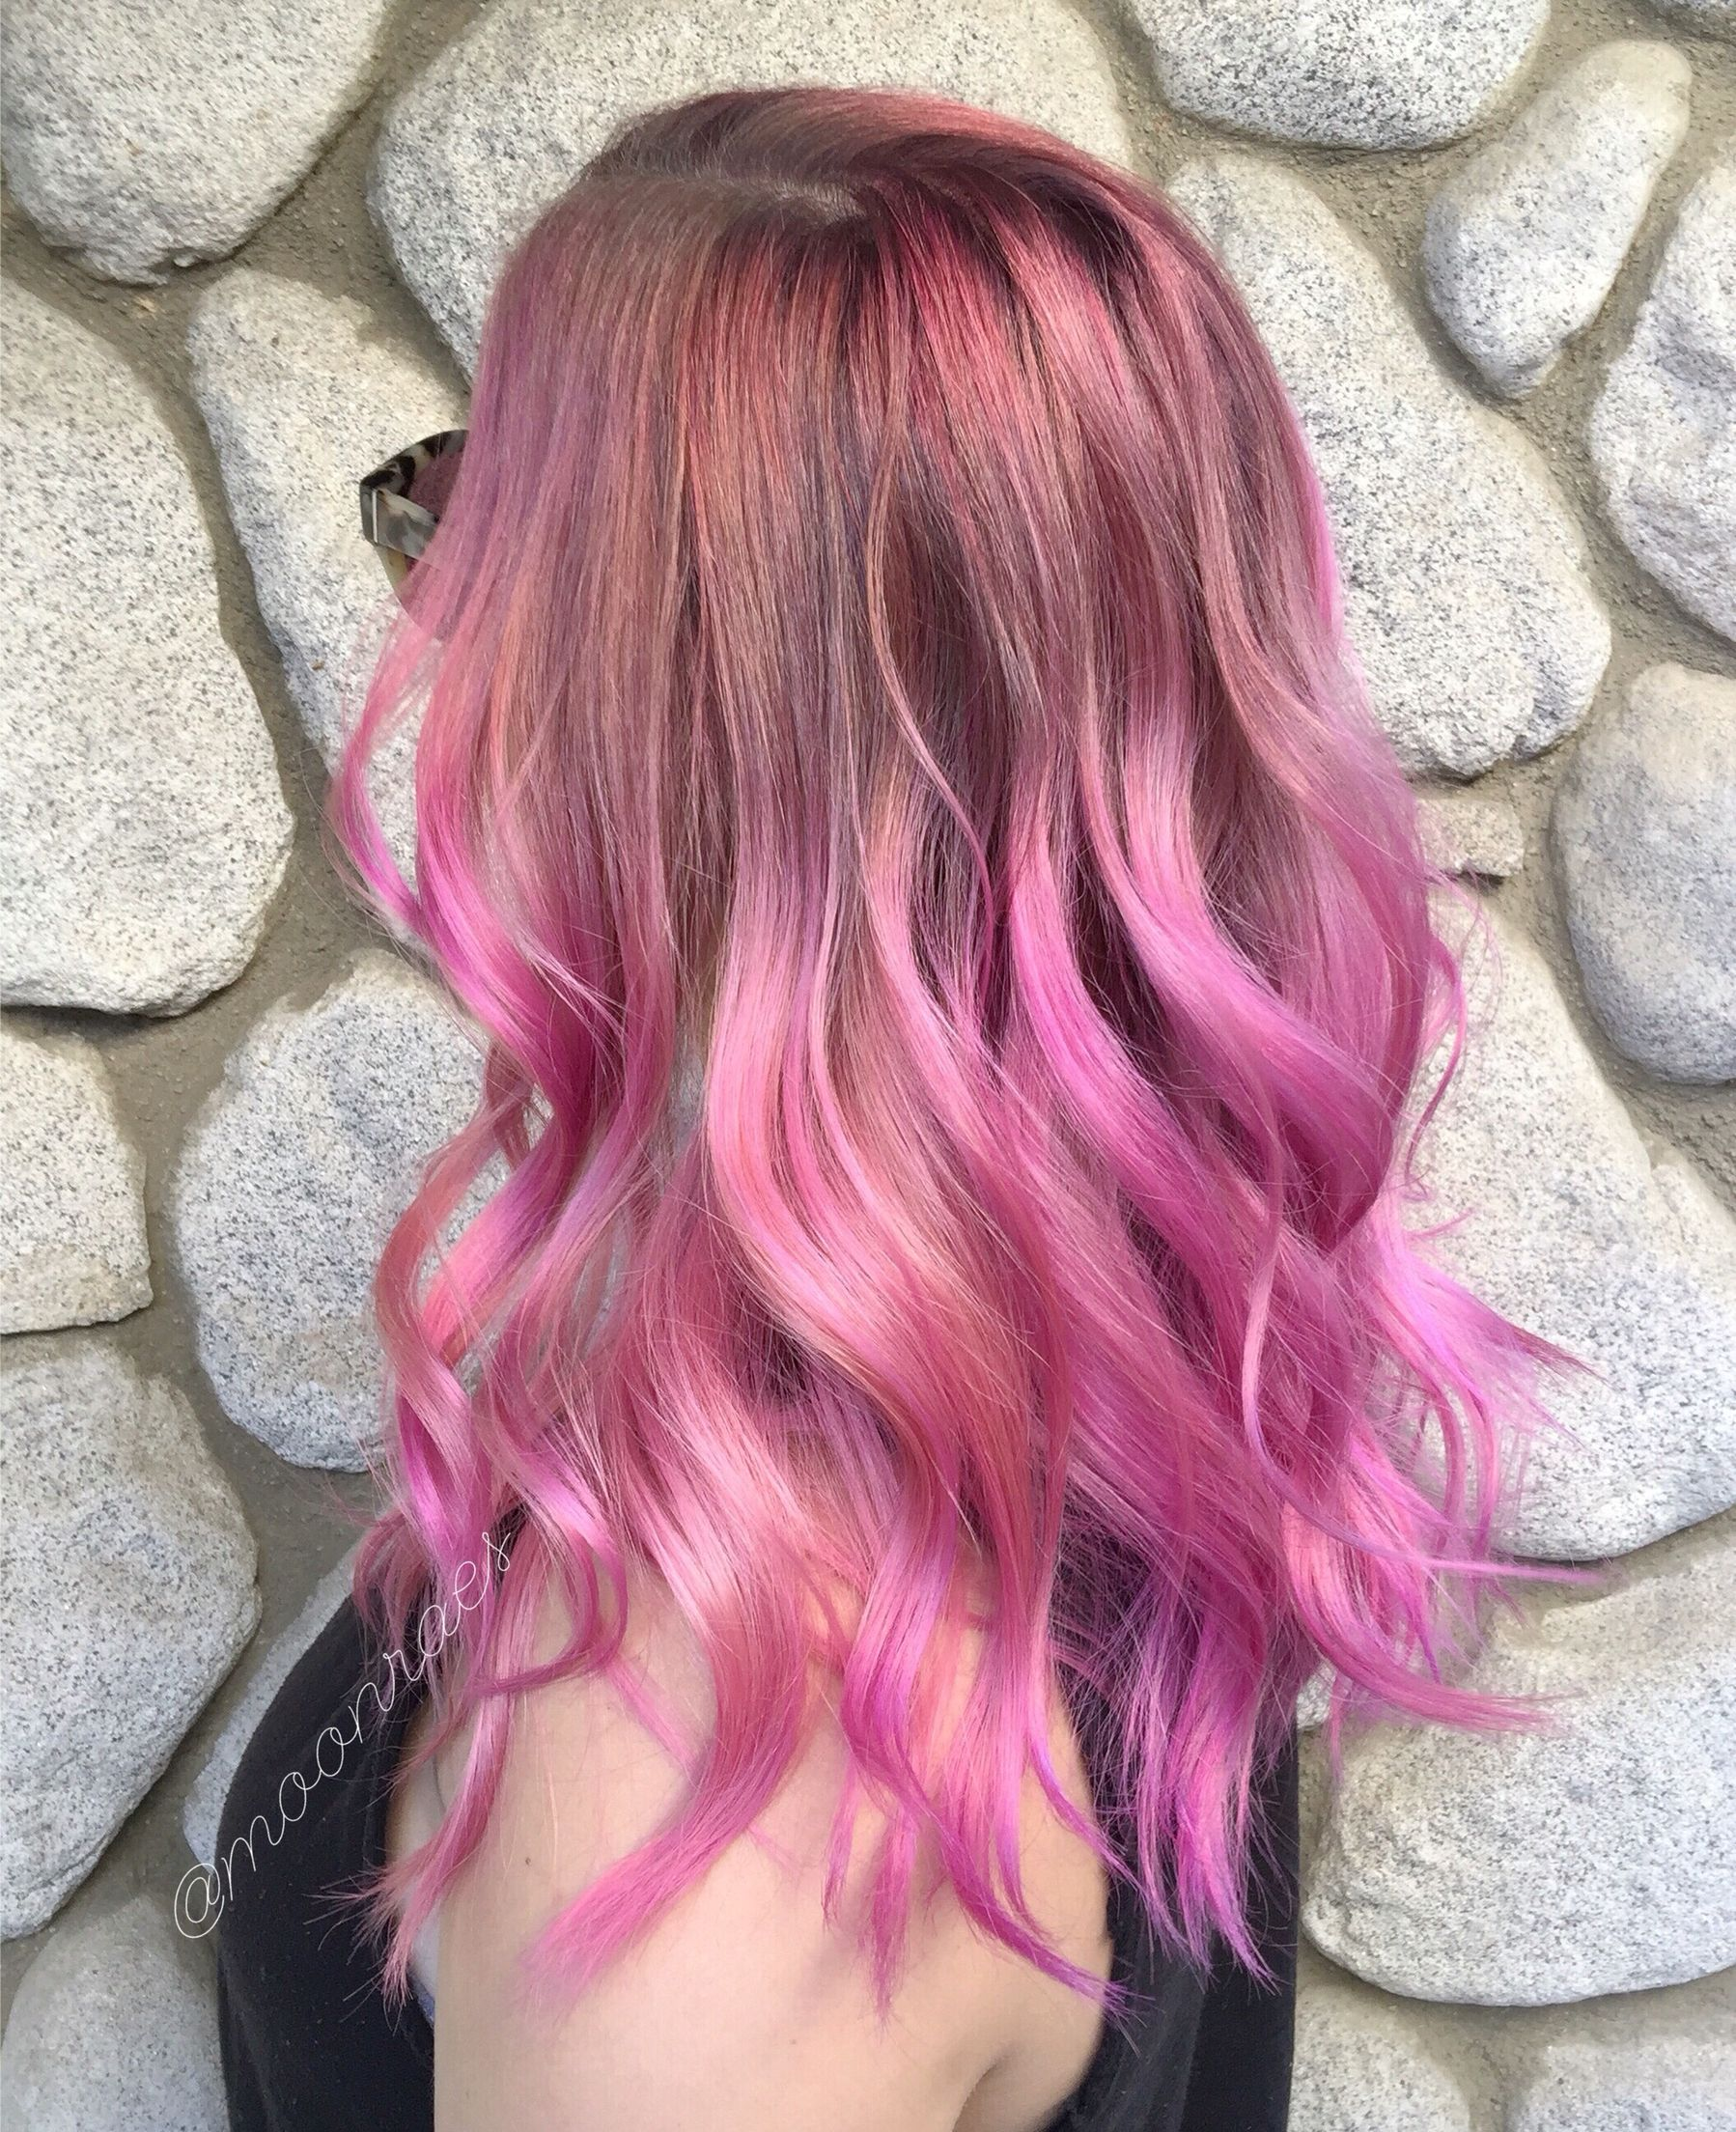 Hair by hayleerae instagram moonraes pinkhair pinkombre